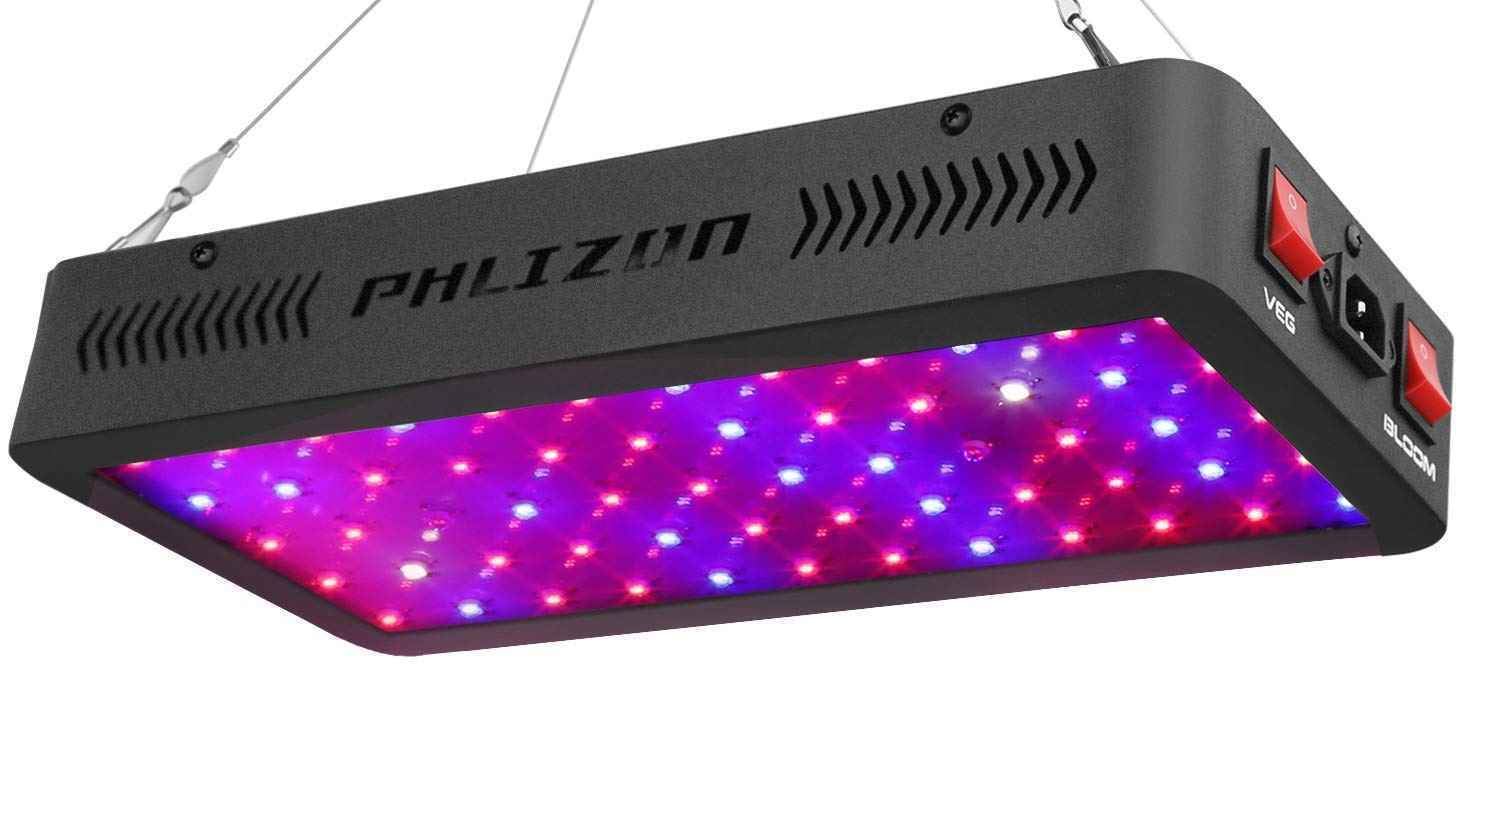 Grow Light 600W LED Phlizon Fotosespecificacionesopiniones 0kOwNnX8PZ